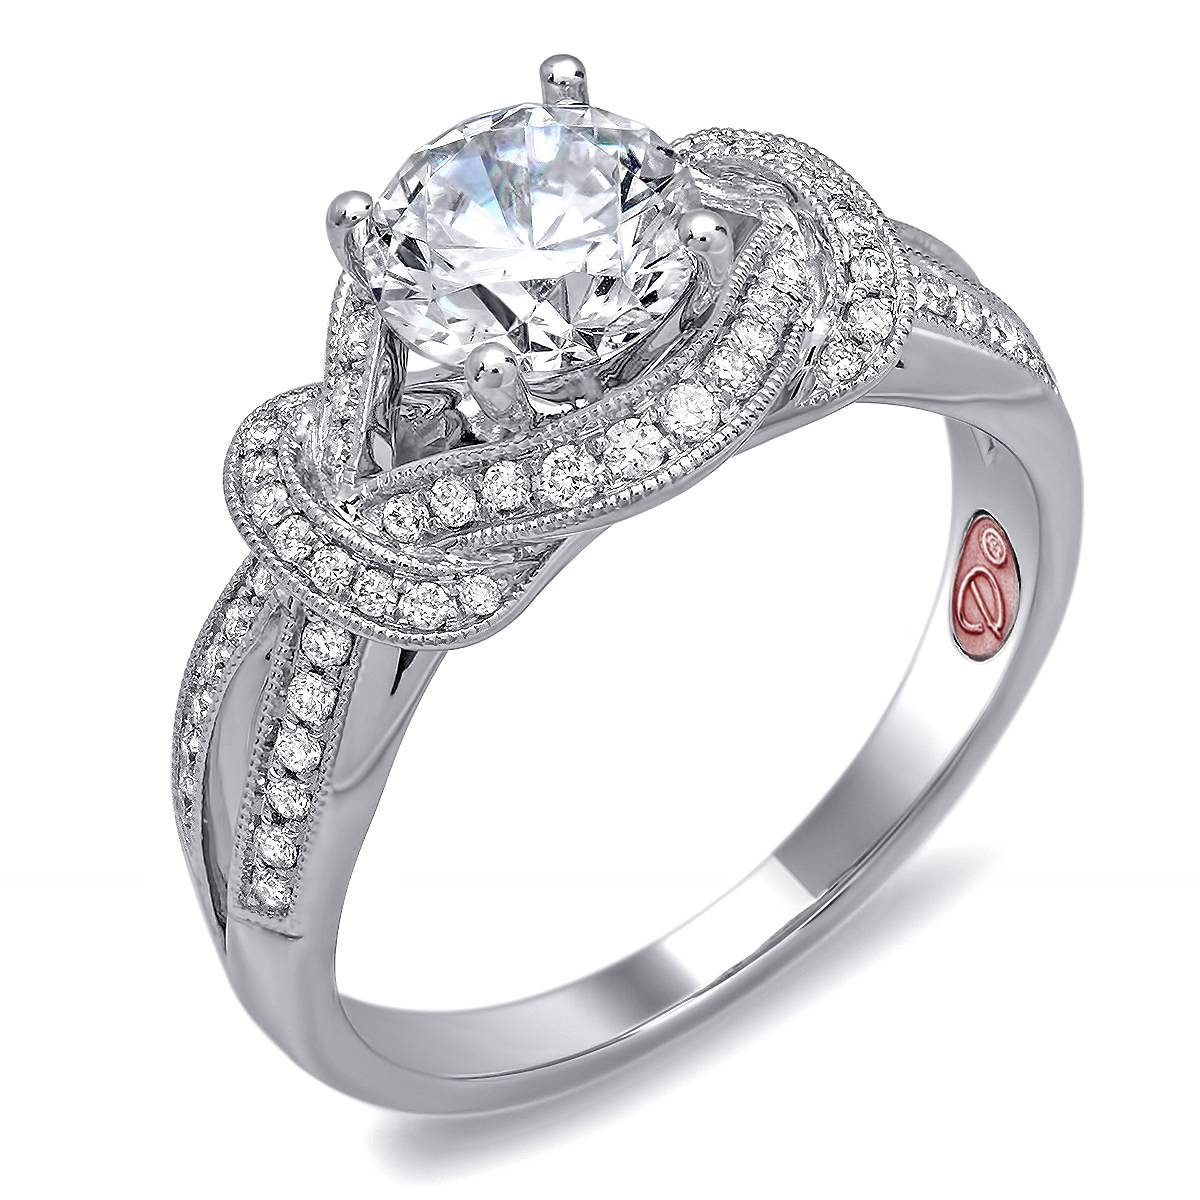 Designer Jewelry | Demarco Bridal Jewelry Official Blog | Page 4 Intended For Love Knot Engagement Rings (View 12 of 15)